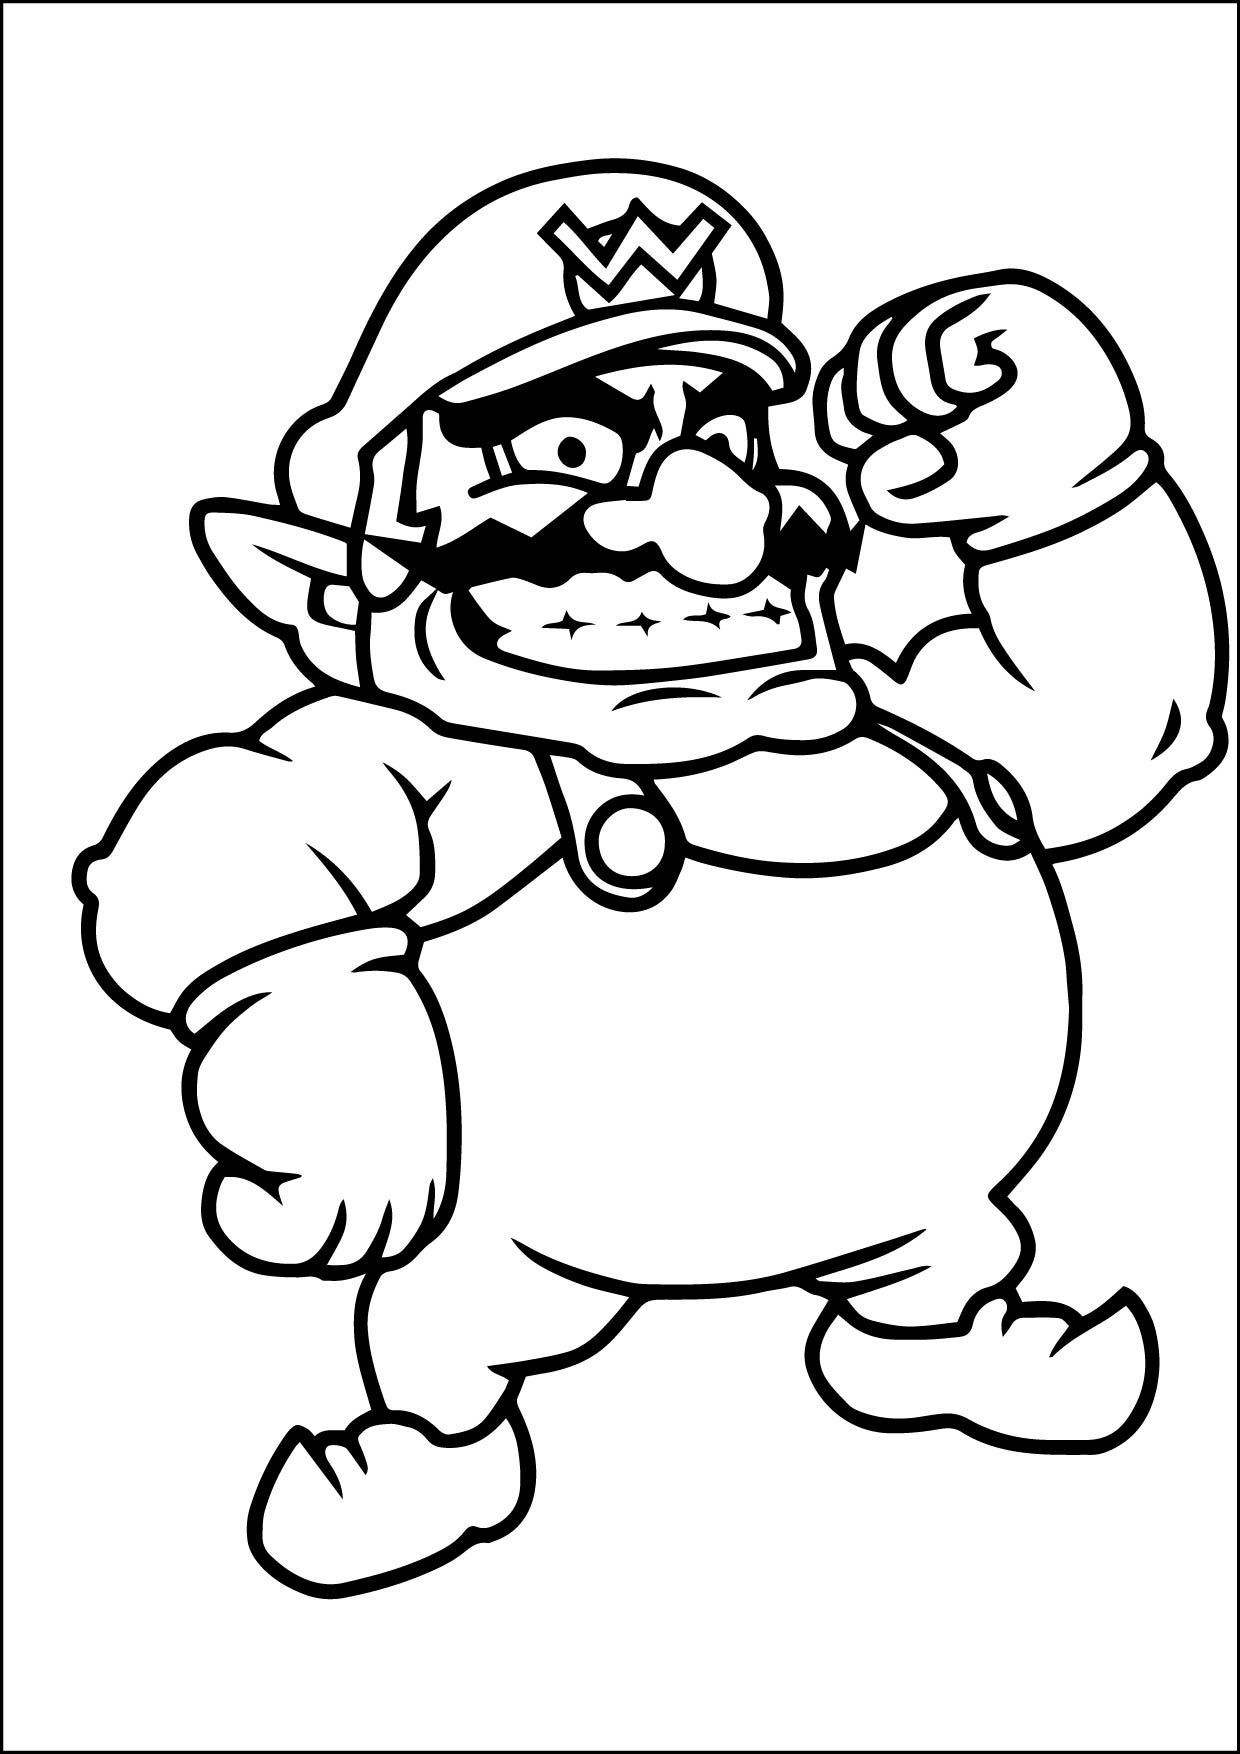 cool coloring page 11102015_06553901 Check more at http